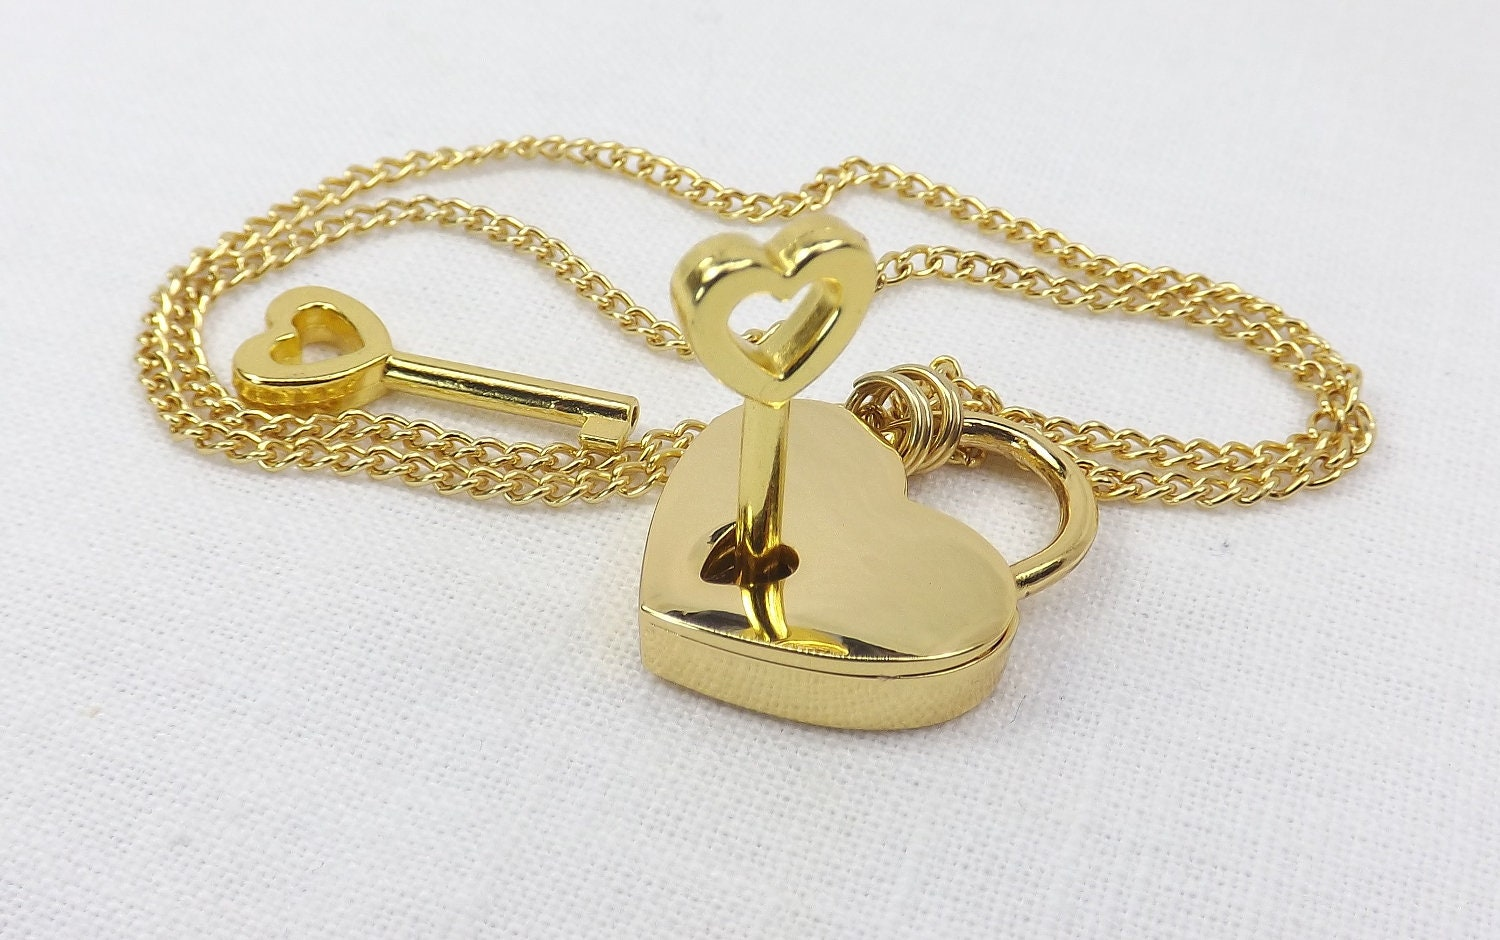 Locking Jewelry Gold color heart lock necklace gift for her submissive locking jewelry - product image